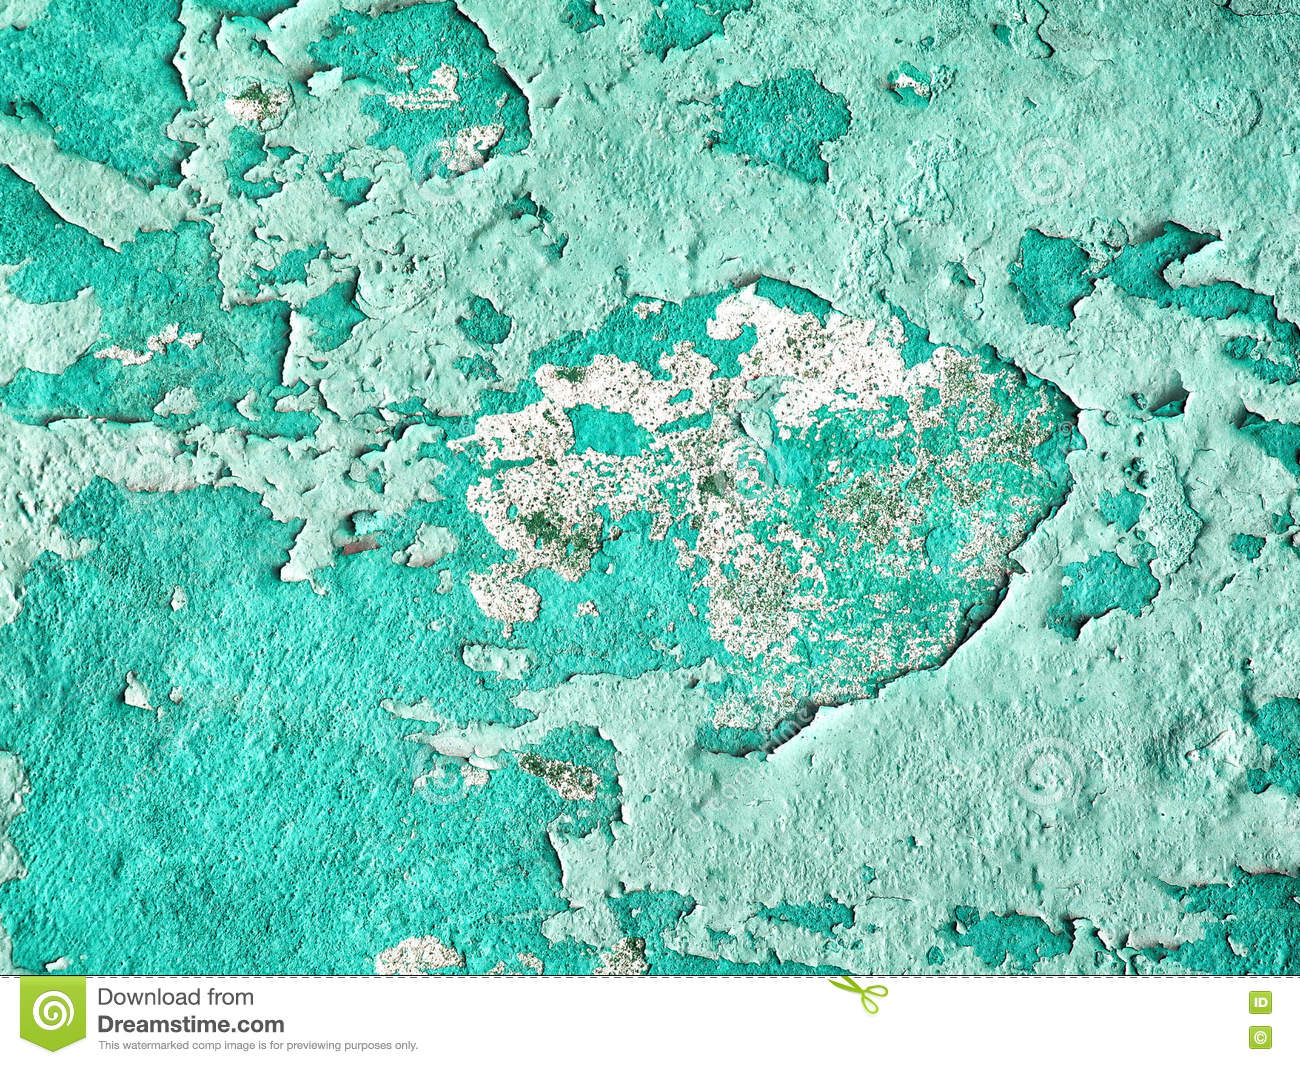 Turquoise Brick Wallpaper Vintage Turquoise Concrete Crack Wall Texture Background